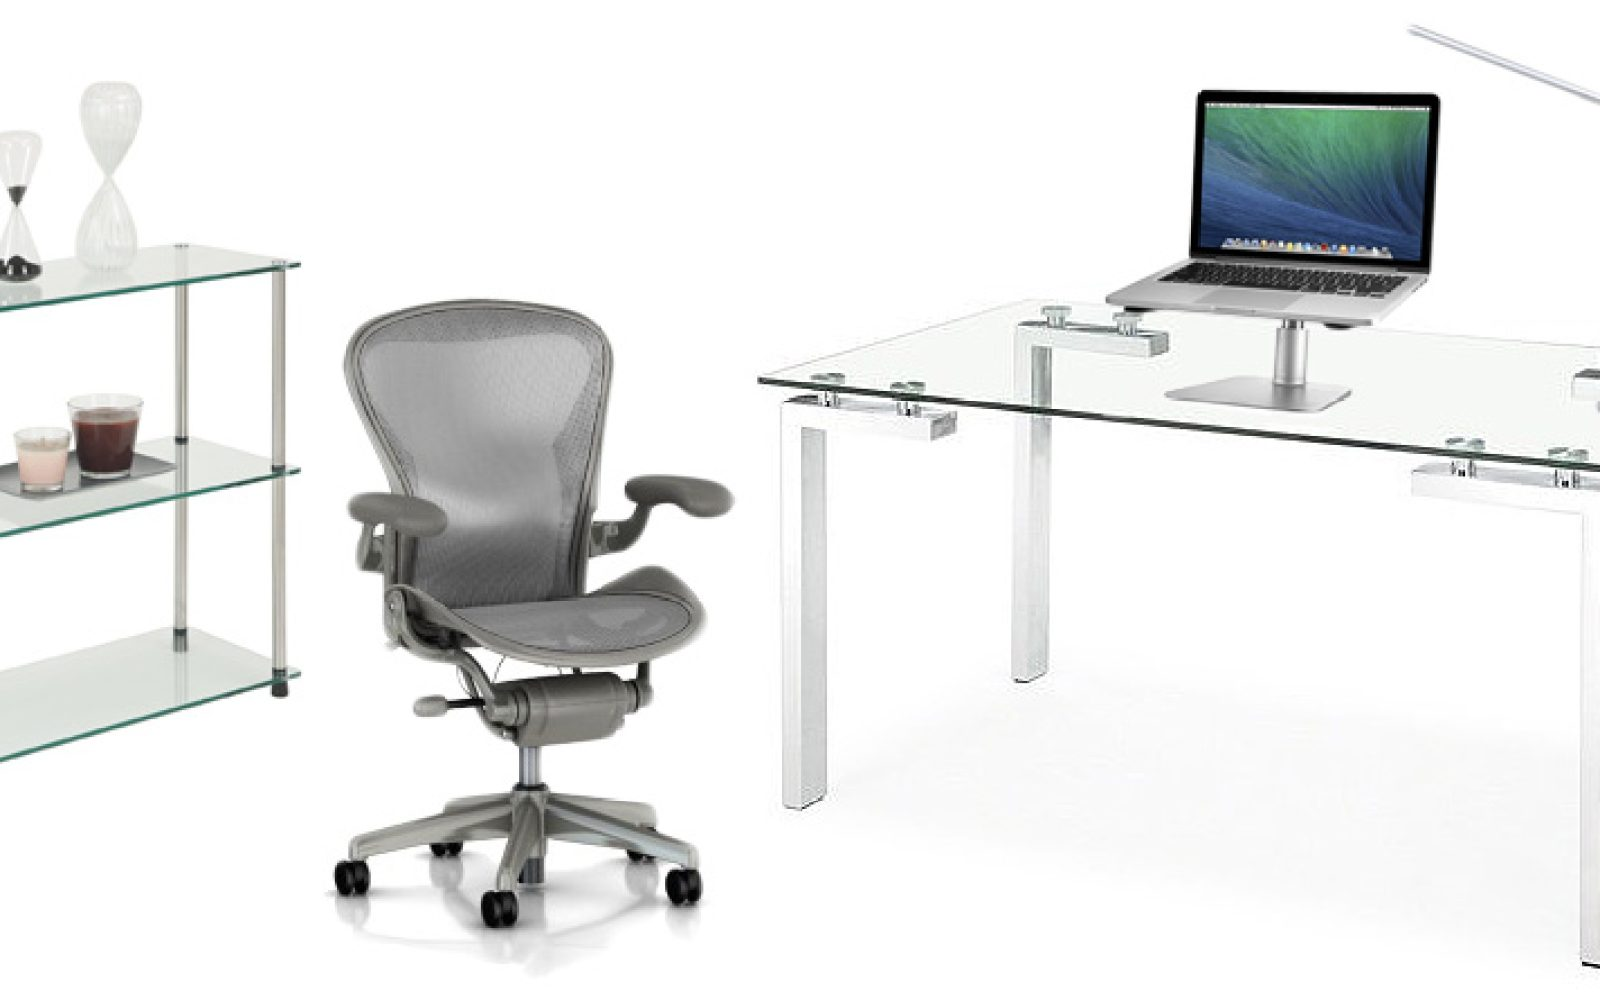 The best Mac desk, chair, decor, and peripherals for your home